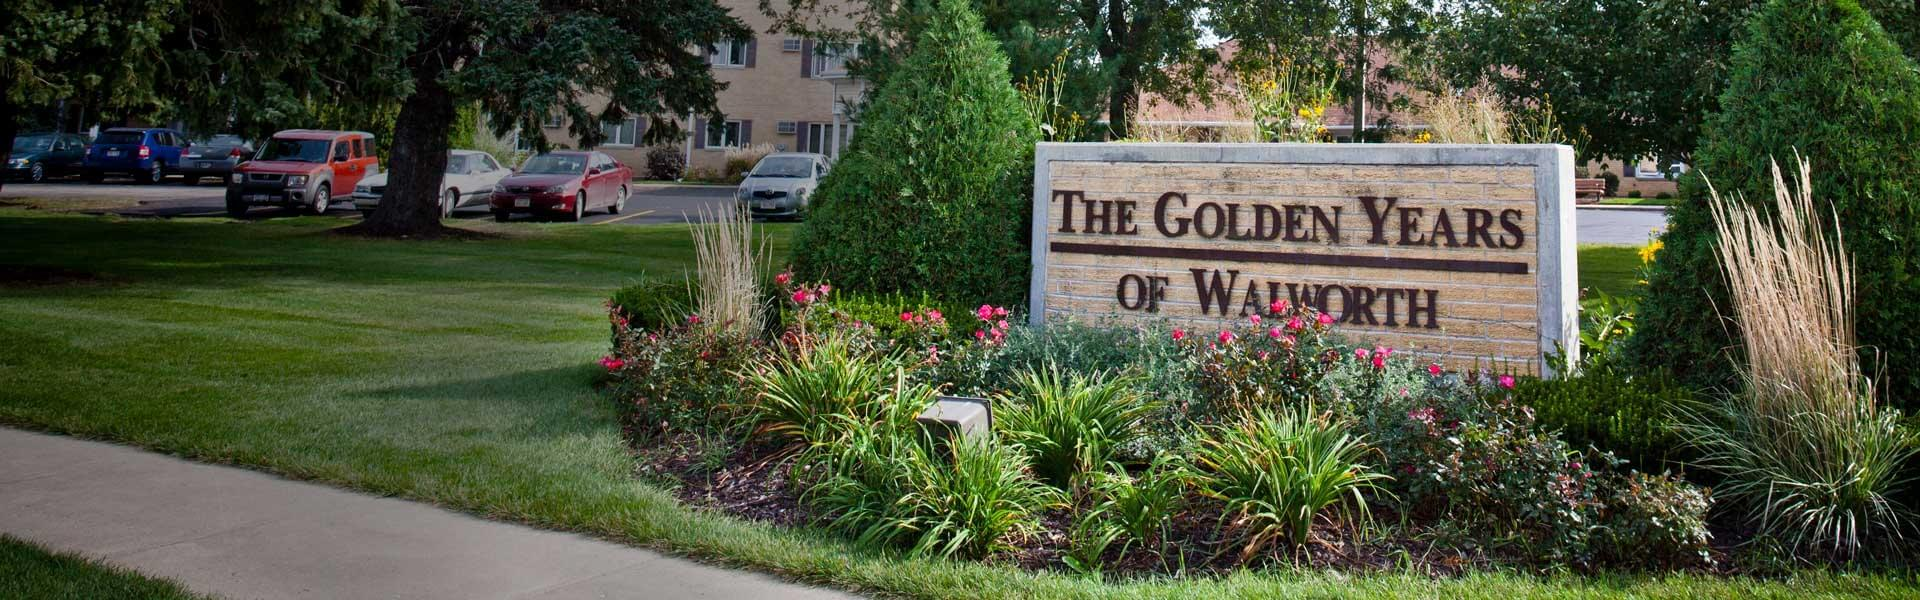 Photo of Golden Years, Assisted Living, Nursing Home, Independent Living, CCRC, Walworth, WI 2